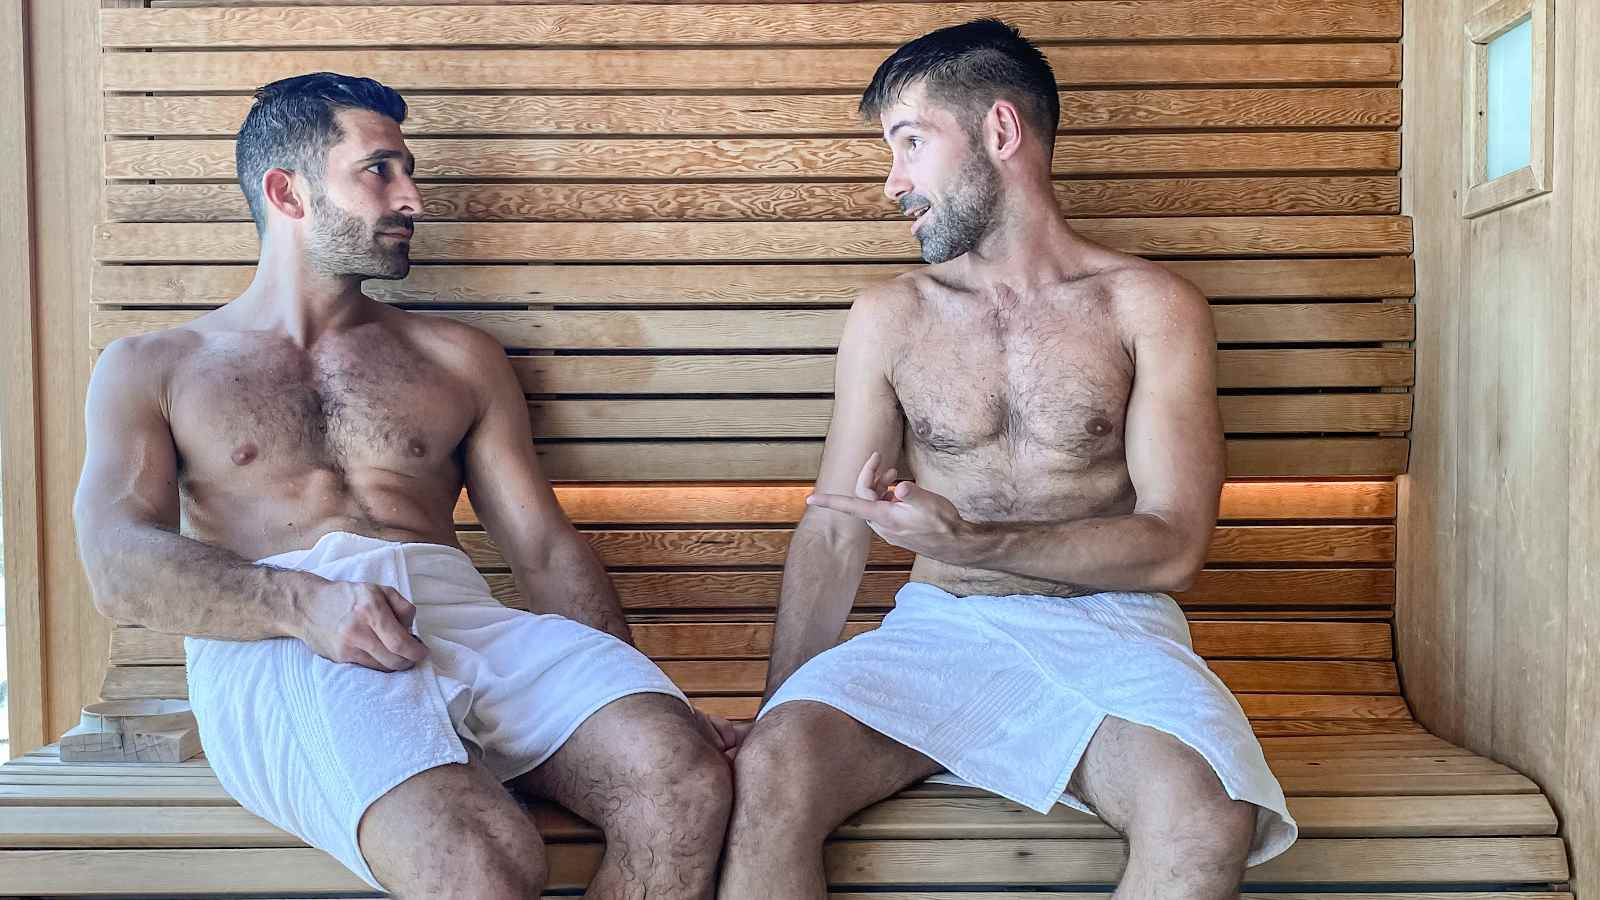 Nomadic Boys chilling in a gay sauna in Manchester